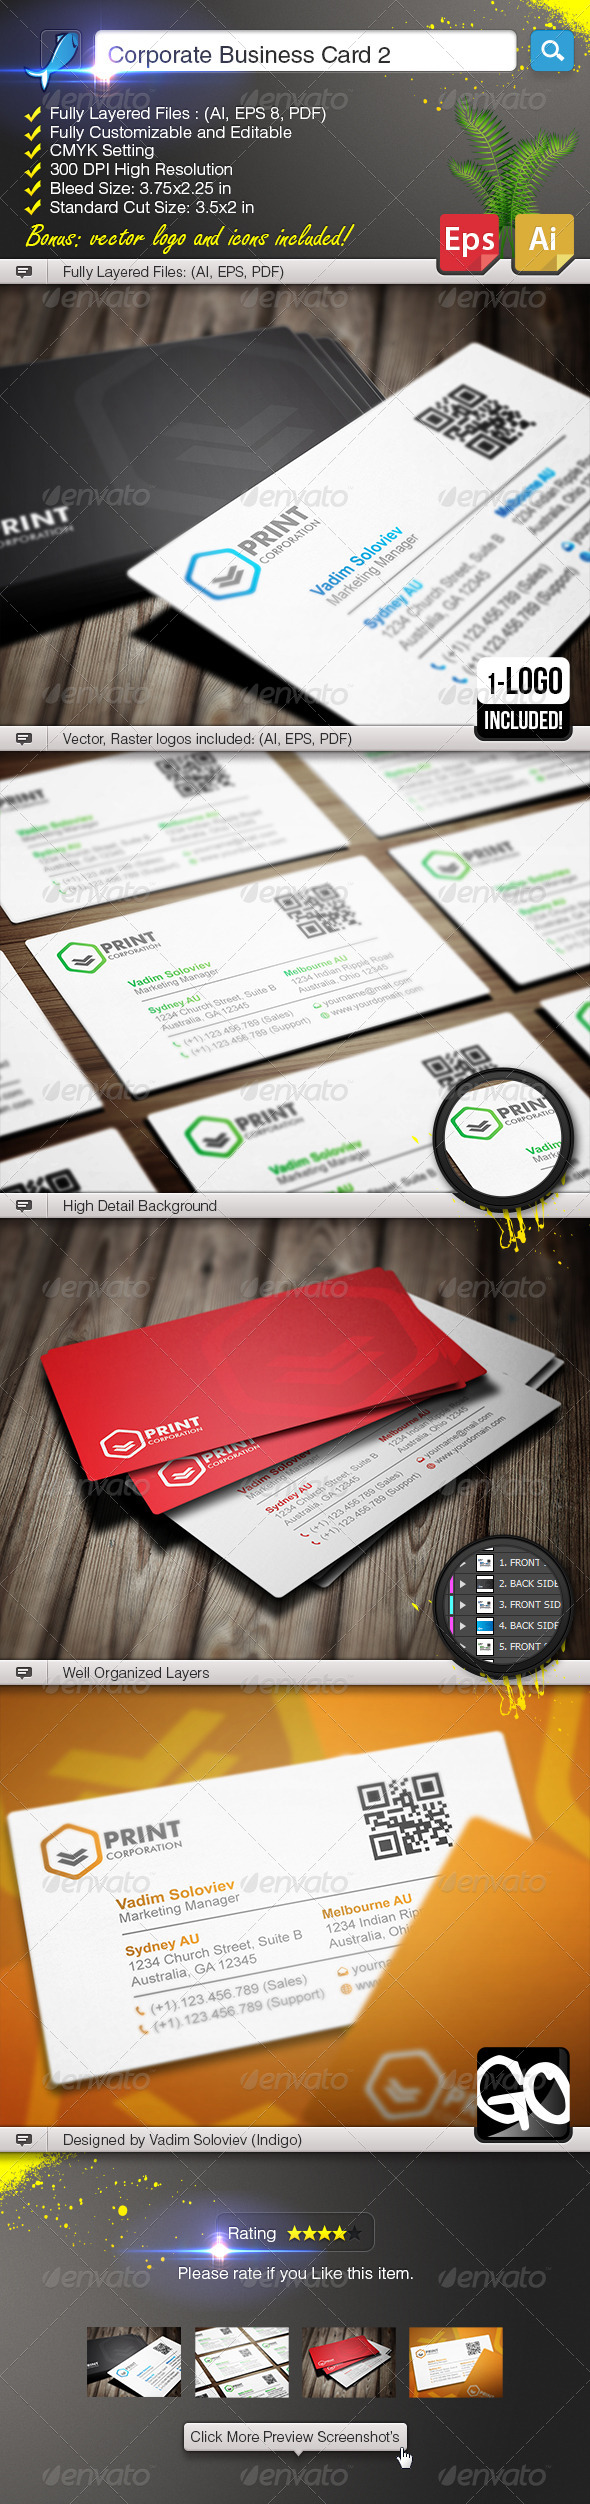 GraphicRiver Corporate Business Card 2 5719699